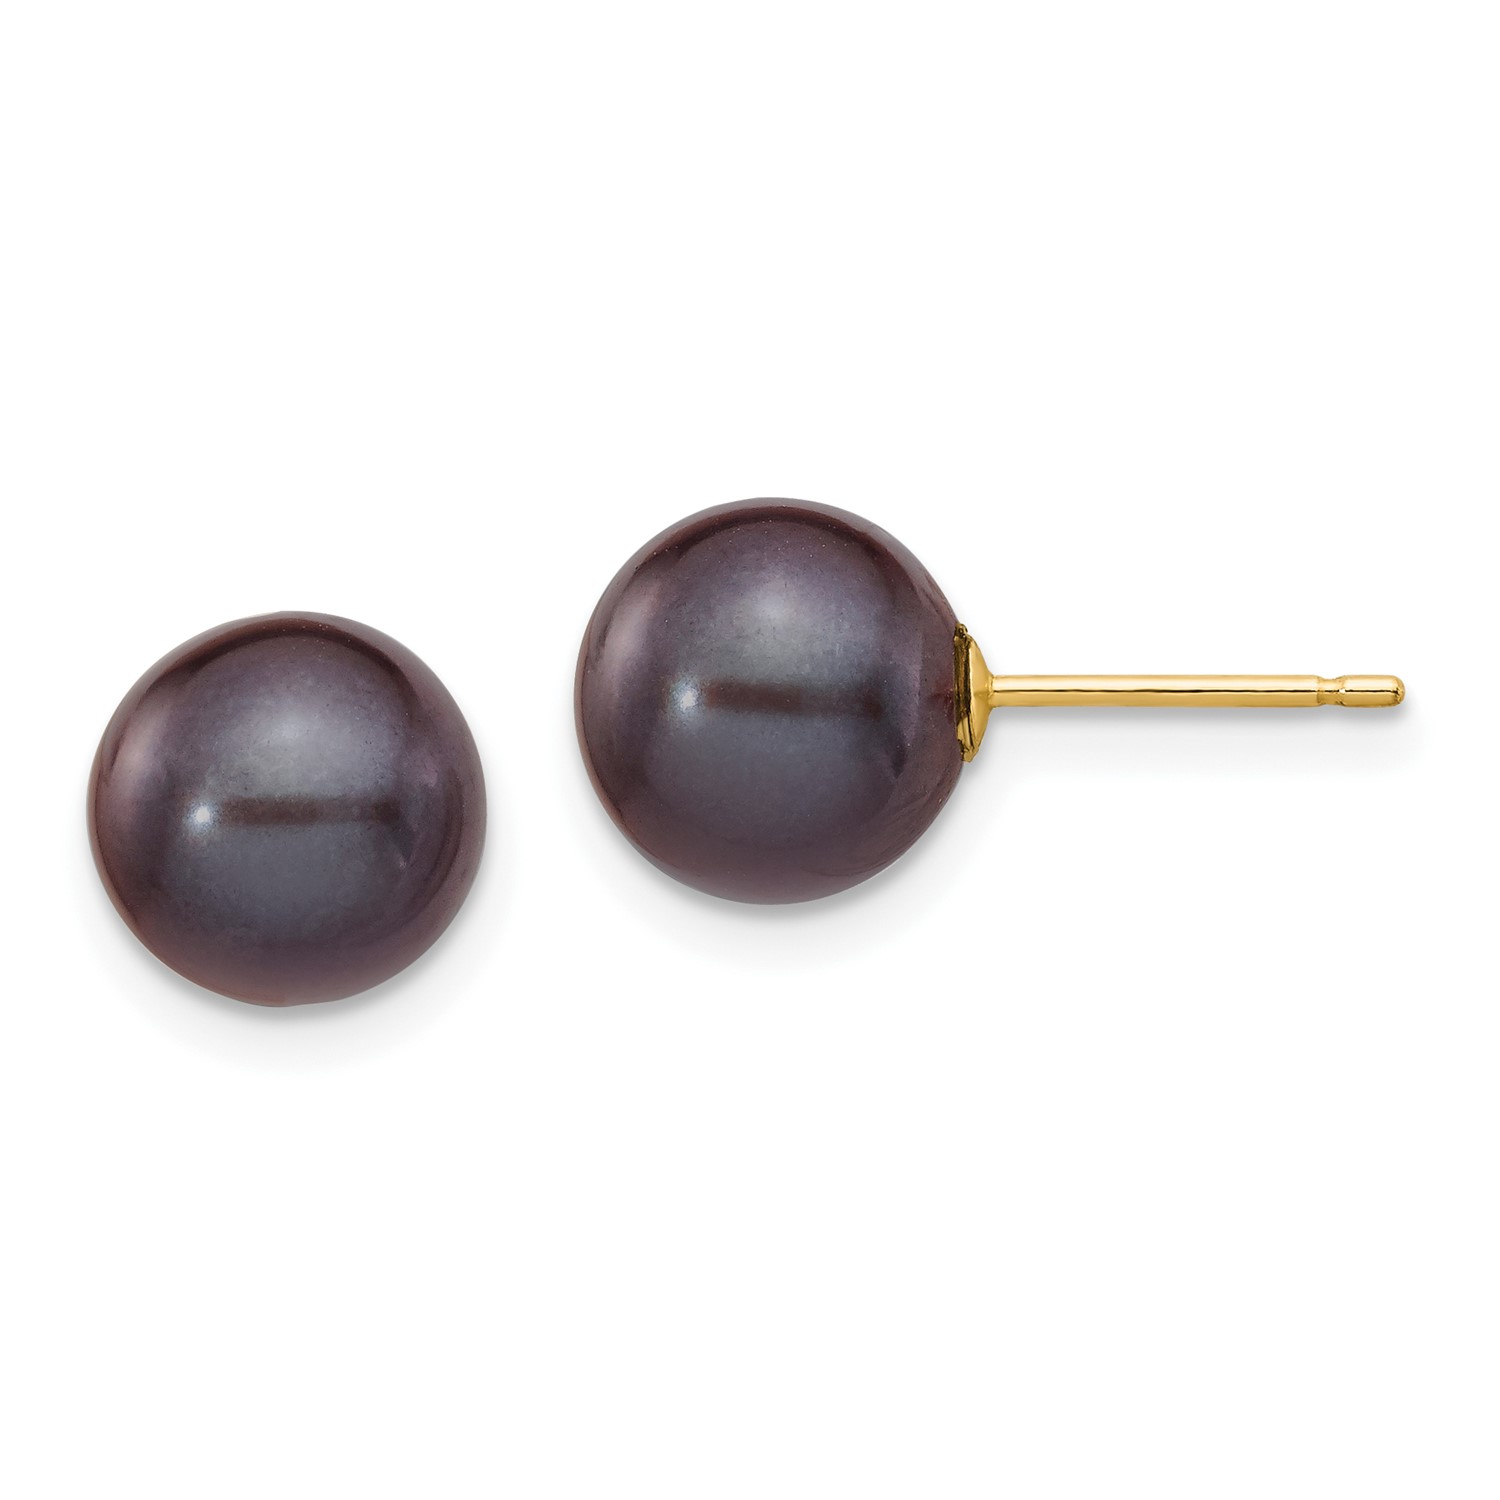 14k-Yellow-Gold-8-8-5mm-Black-Round-Freshwater-Cultured-Pearl-Stud-Earrings